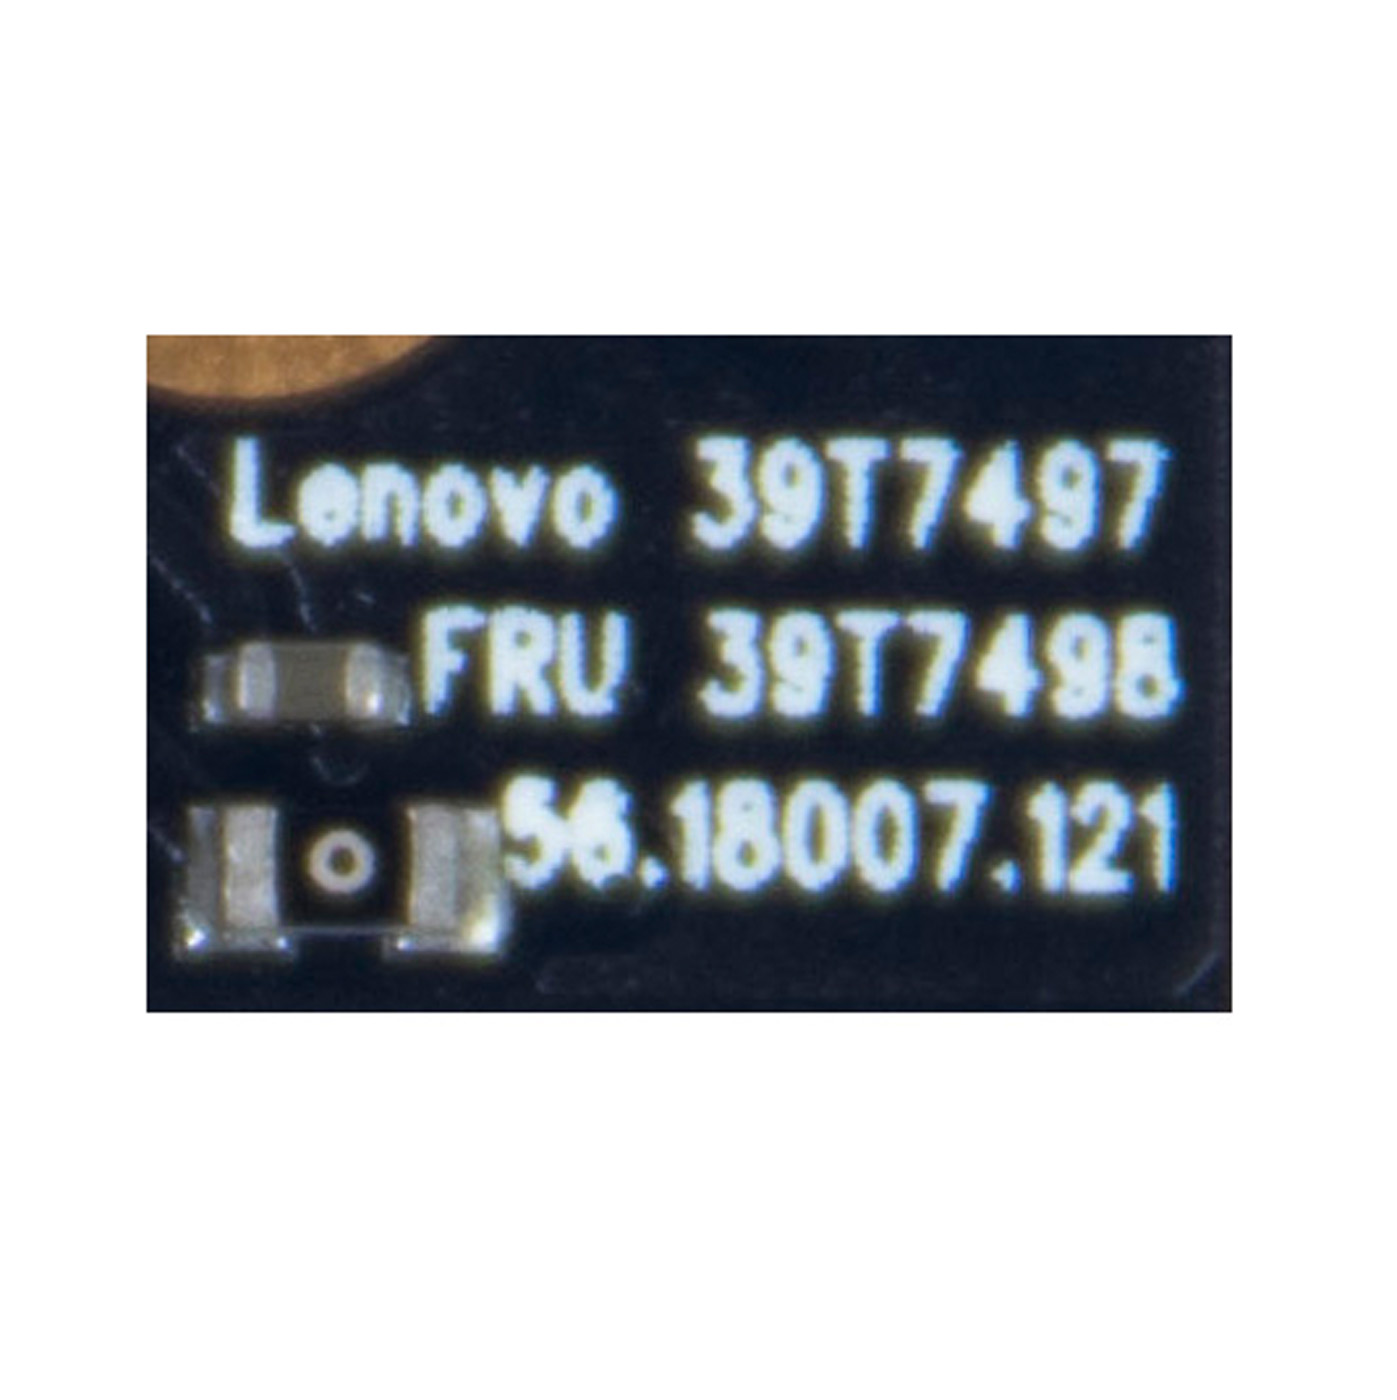 Kamera webcam Lenovo ThinkPad X200T X201T 39T7498